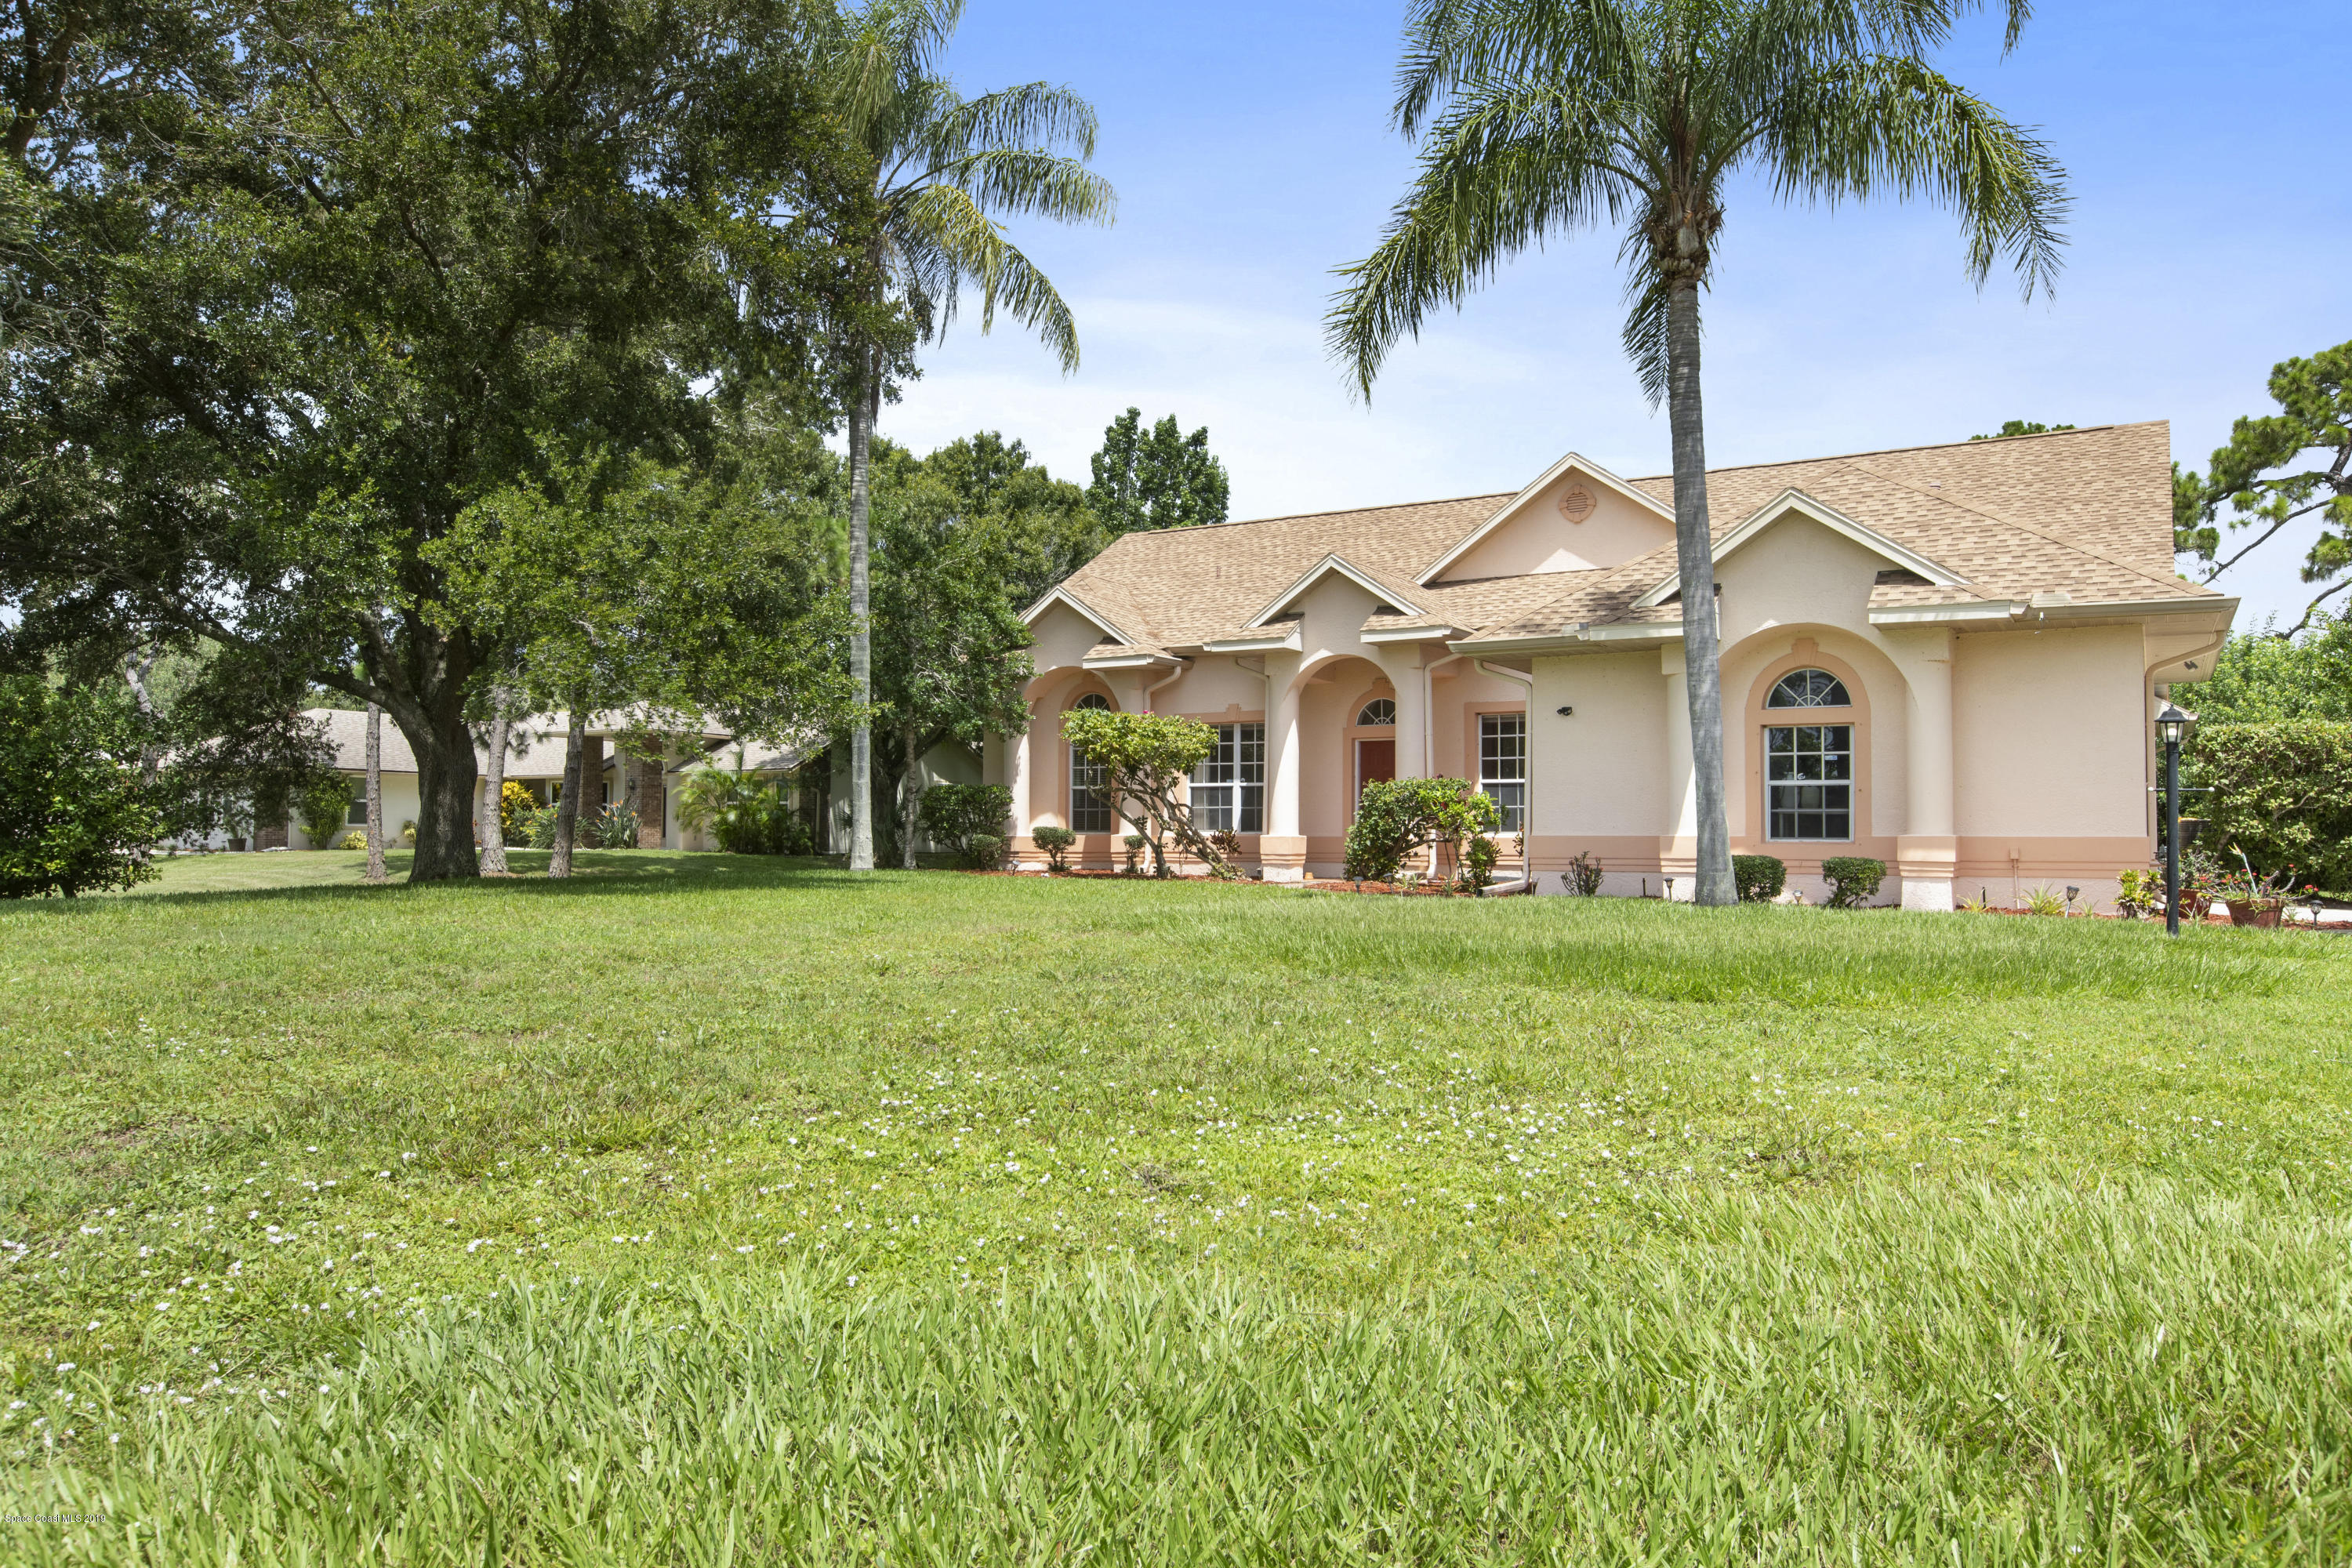 Single Family Homes for Sale at 3680 Big Pine Melbourne, Florida 32934 United States